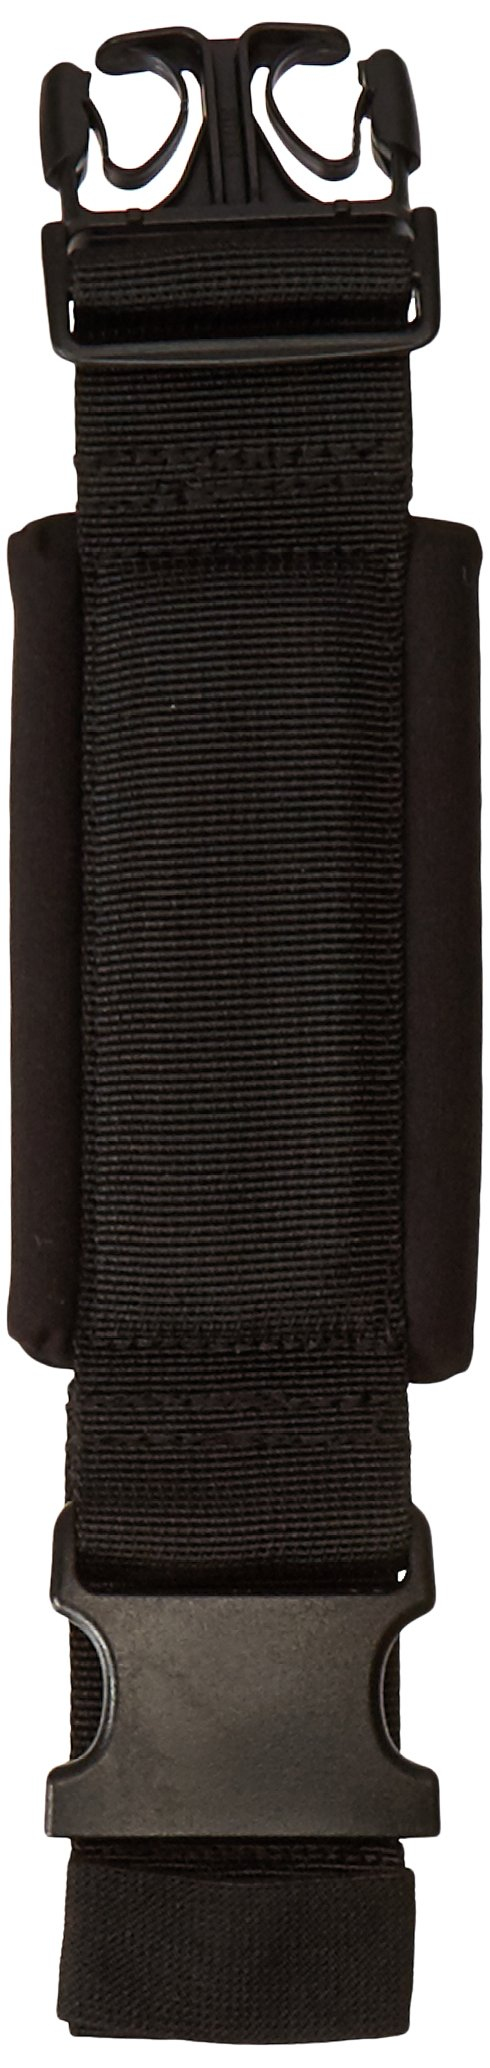 lillebaby 6-1 Baby Carrier Waist Belt Extension Buckle, Black